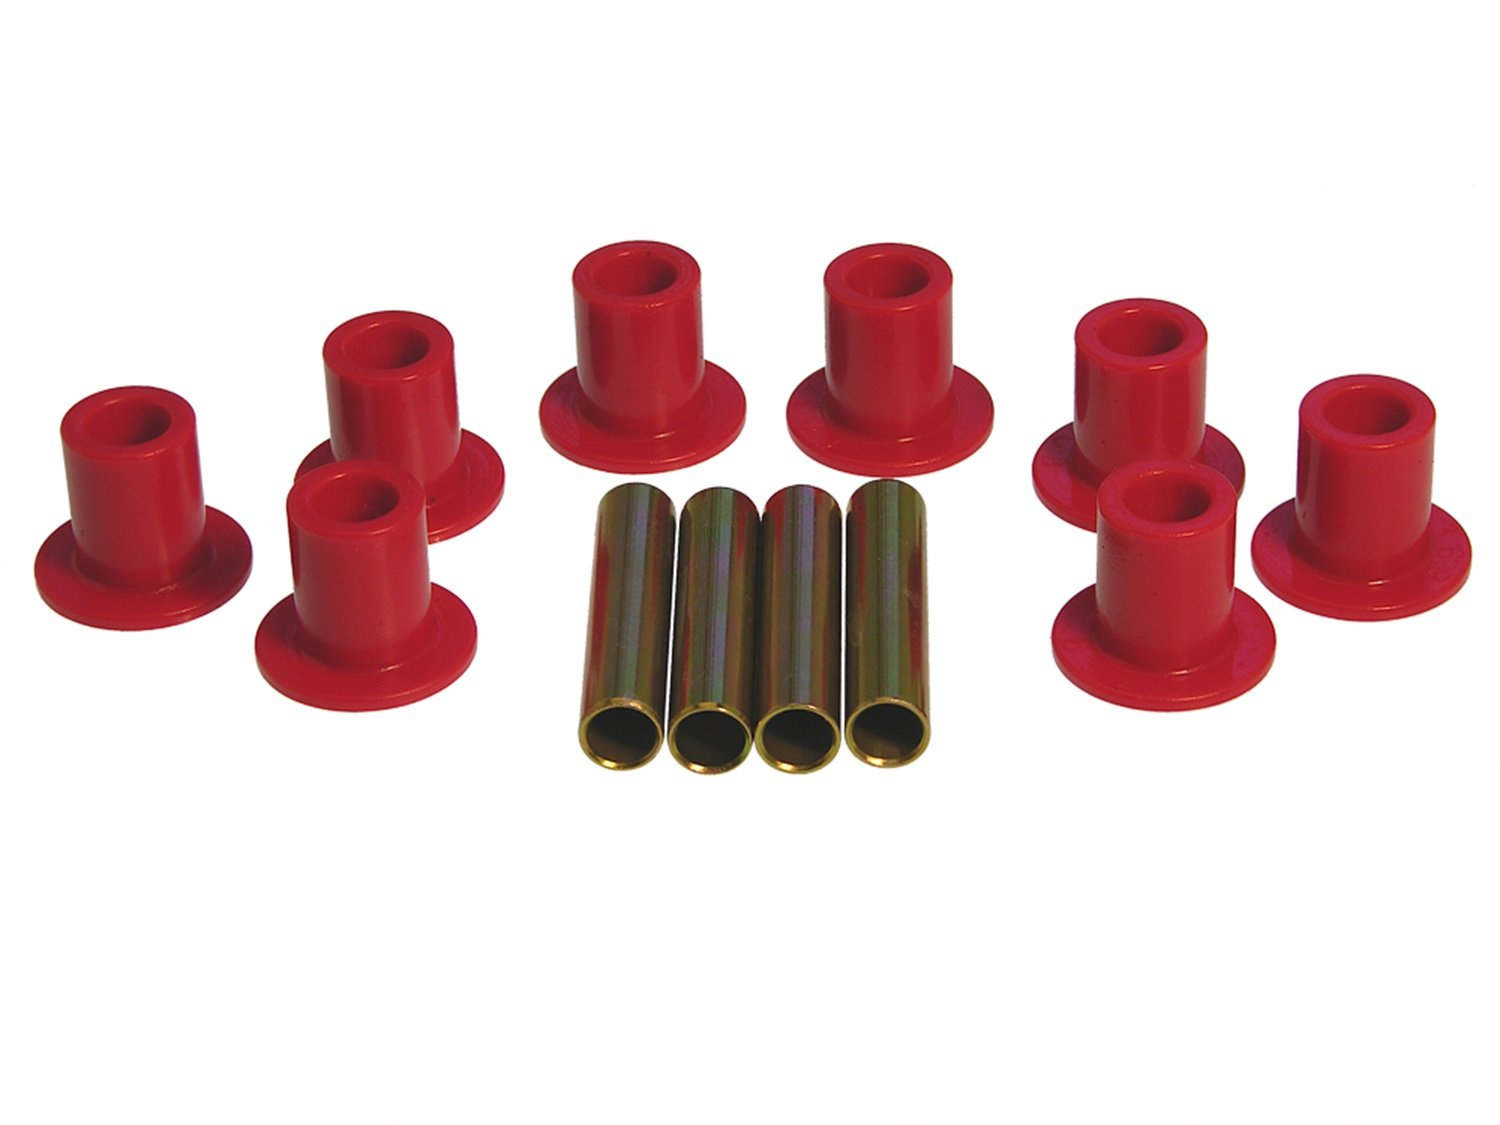 Prothane 4-1005 Red Spring Eye Bushing Kit with 1' ID Spring Eye